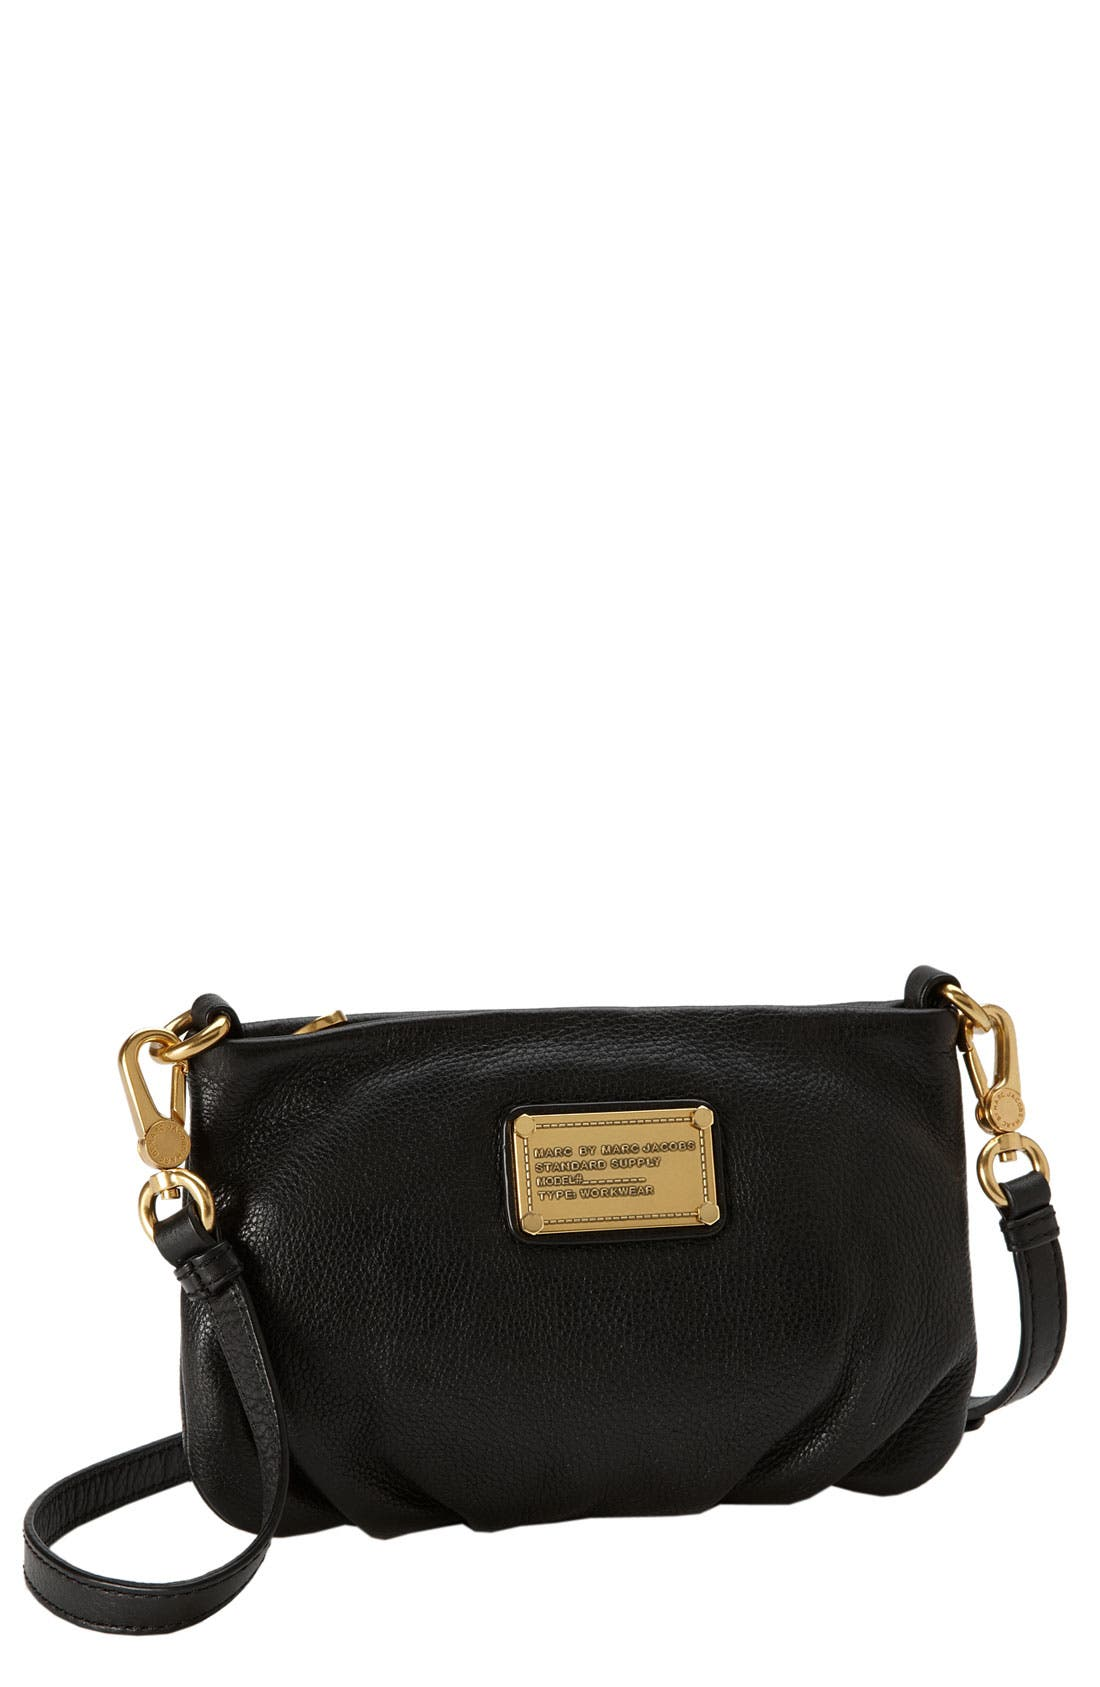 MARC JACOBS,                             MARC BY MARC JACOBS 'Classic Q - Percy' Crossbody Bag, Small,                             Main thumbnail 1, color,                             001